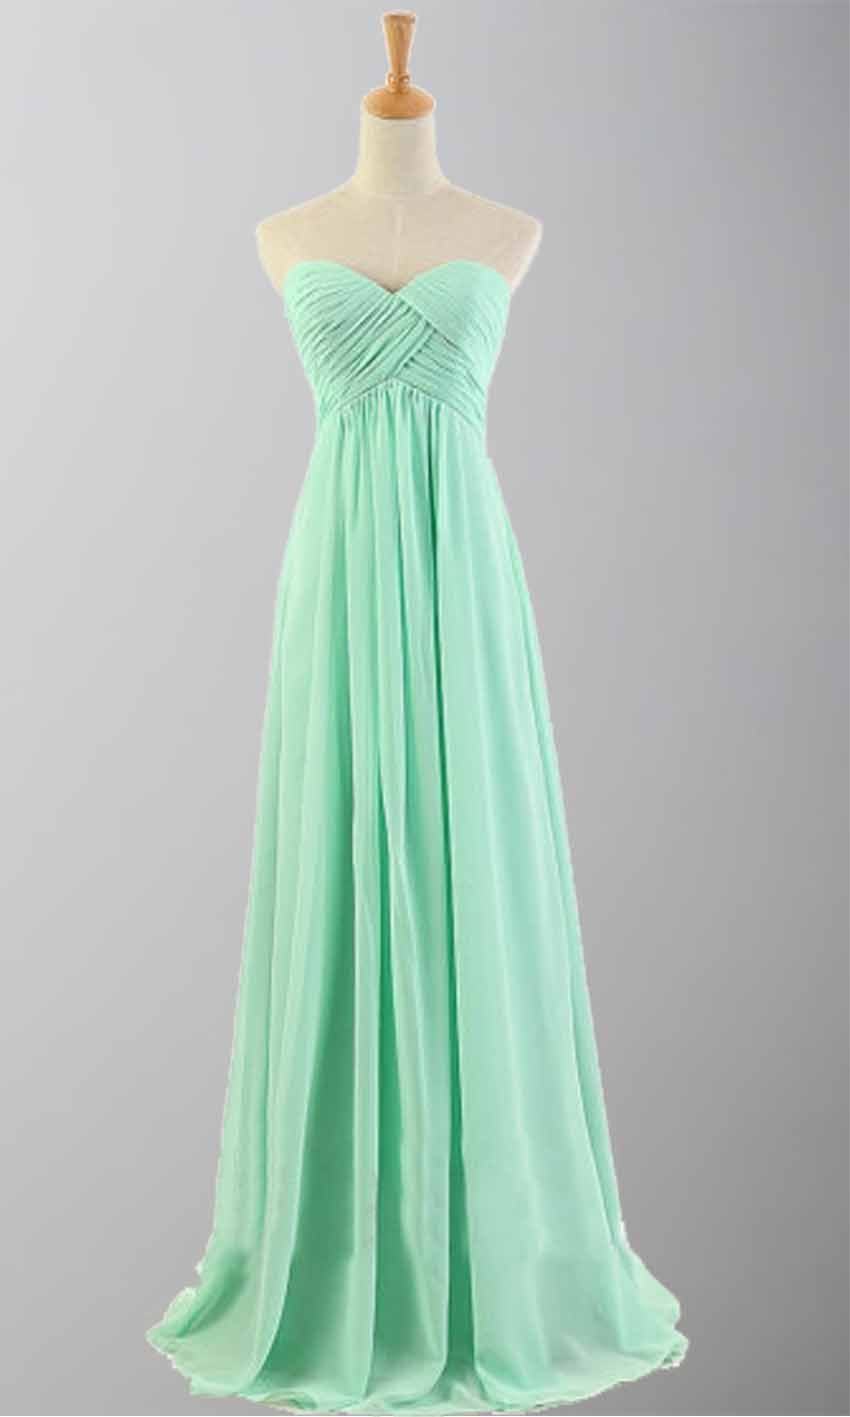 Mint green cross pleated long bridesmaid dresses ksp171 prom mint green cross pleated long bridesmaid dresses ksp171 ombrellifo Image collections